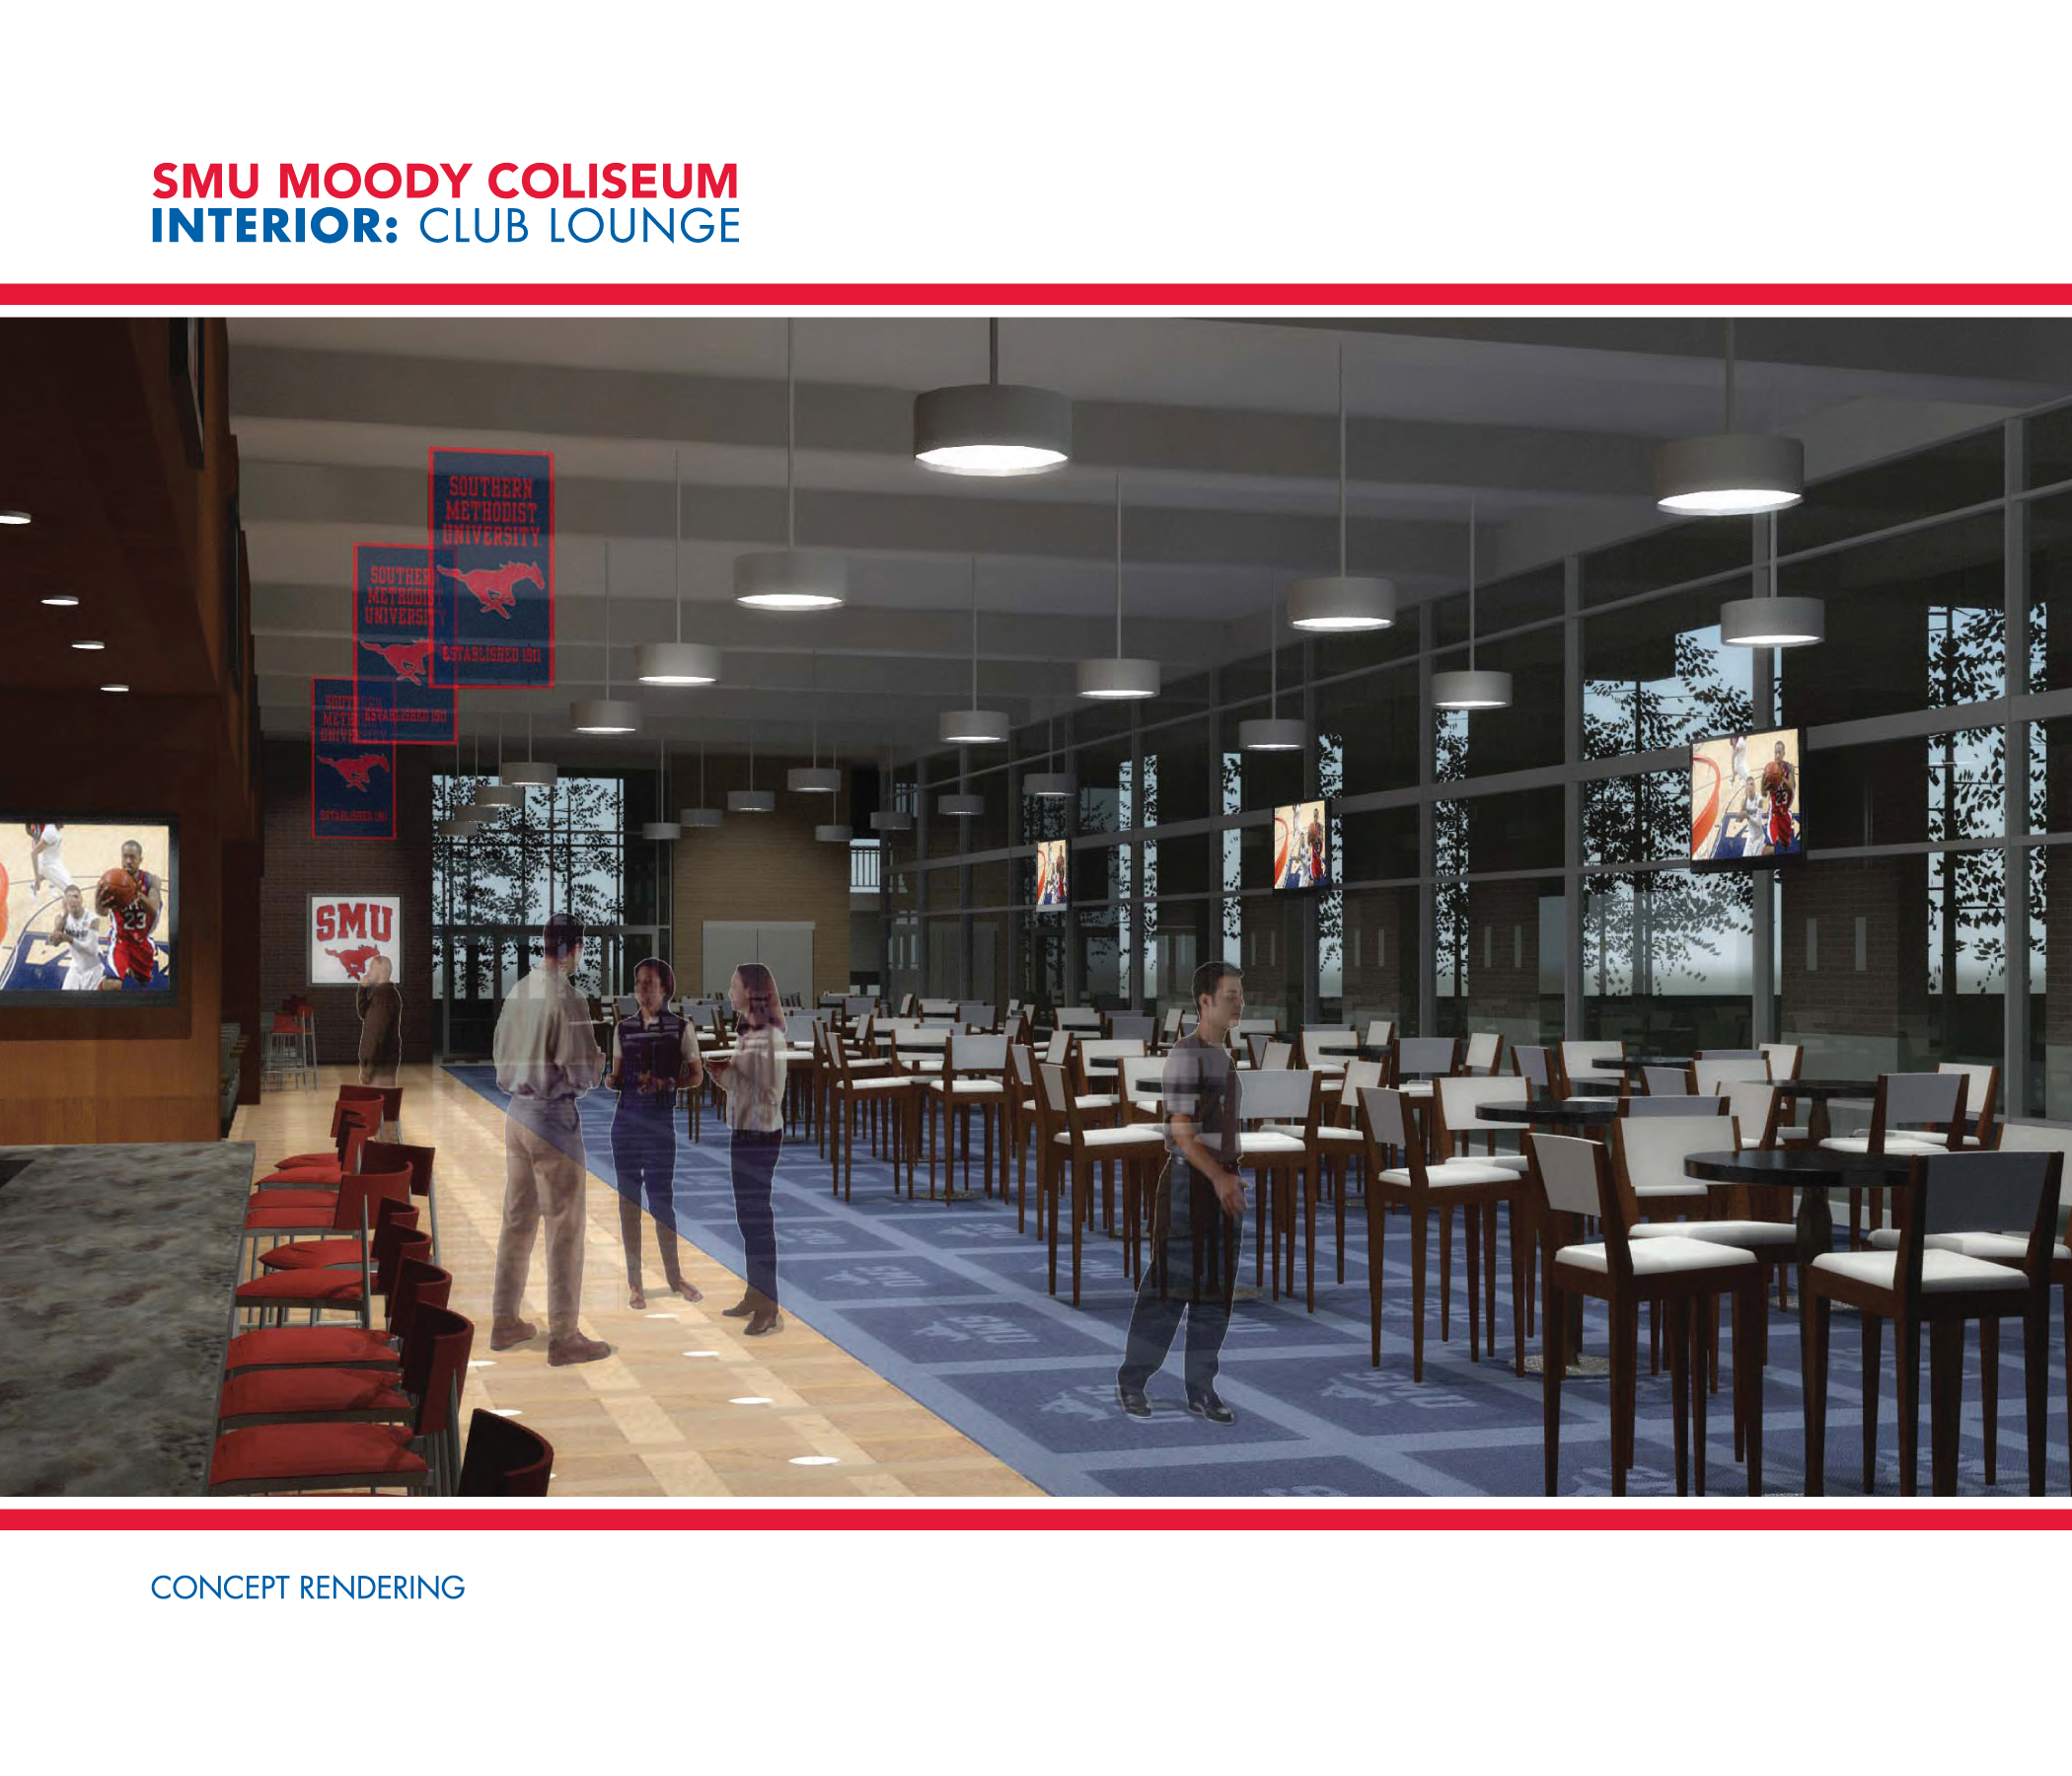 Rendering of the Interior Club Lounge for SMU's Moody Coliseum